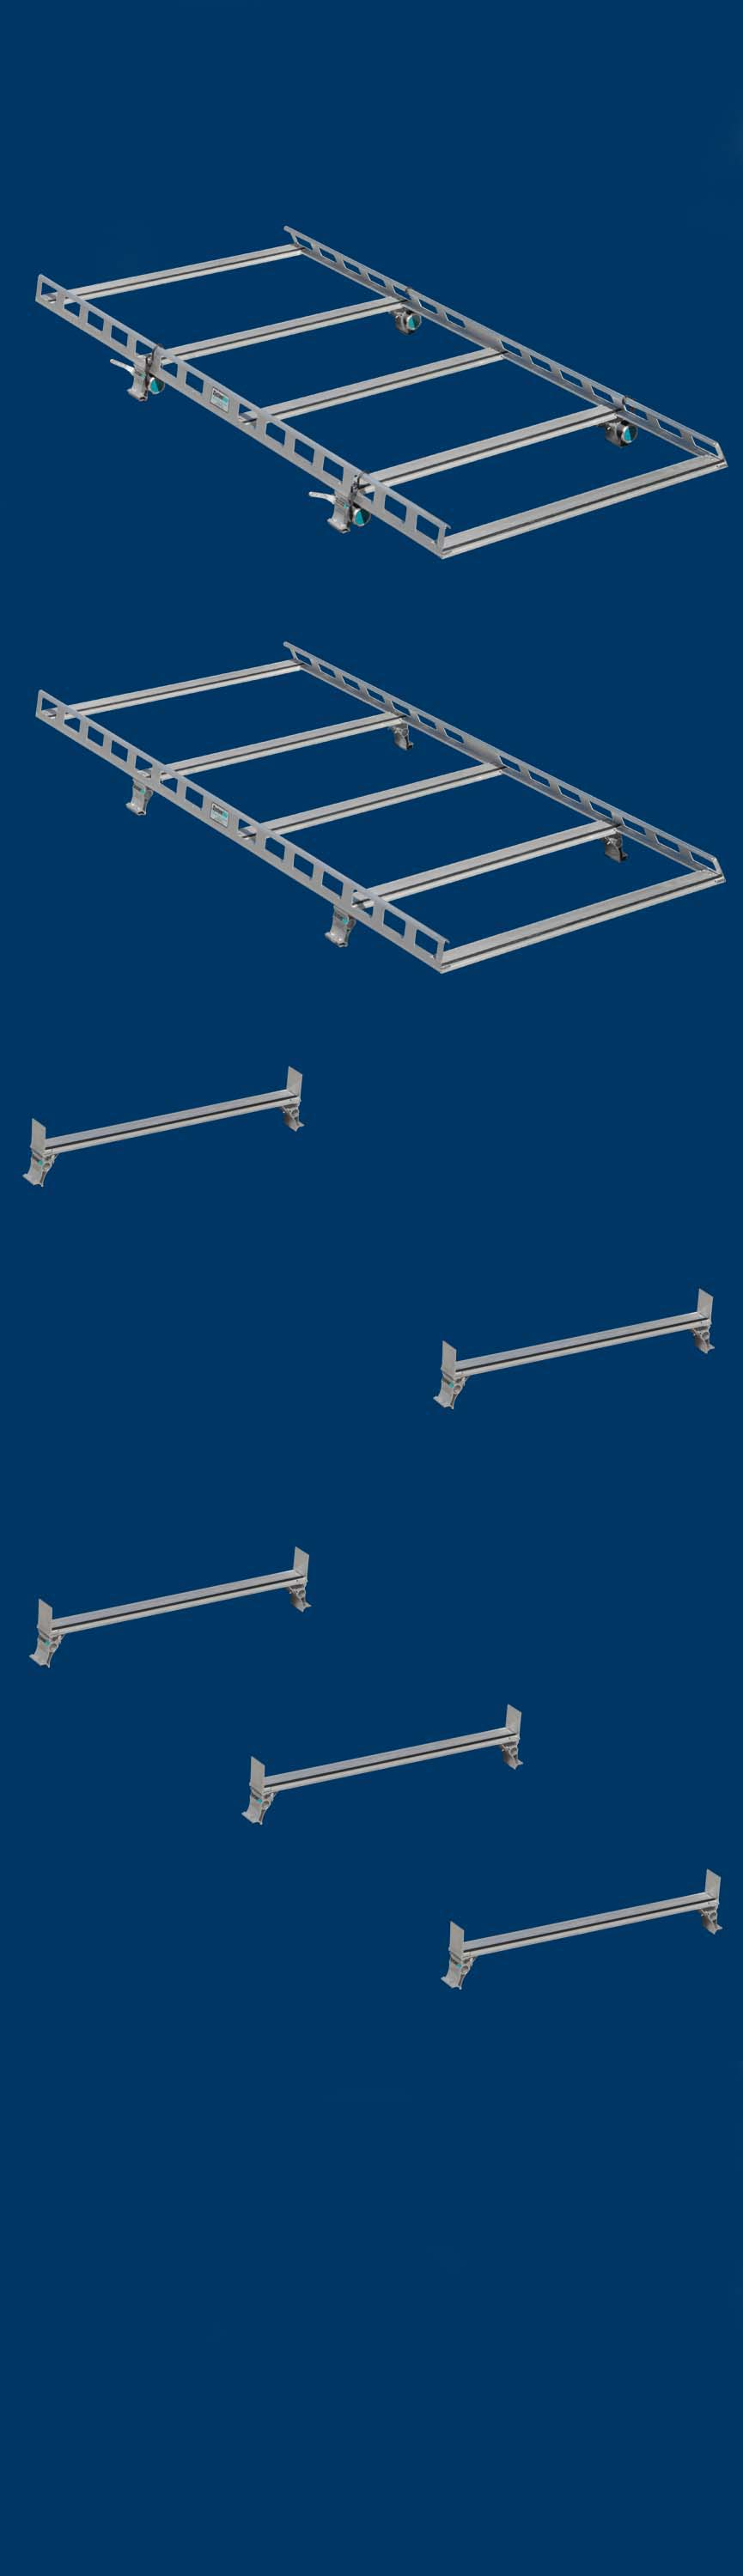 Van Ladder Racks - Overview